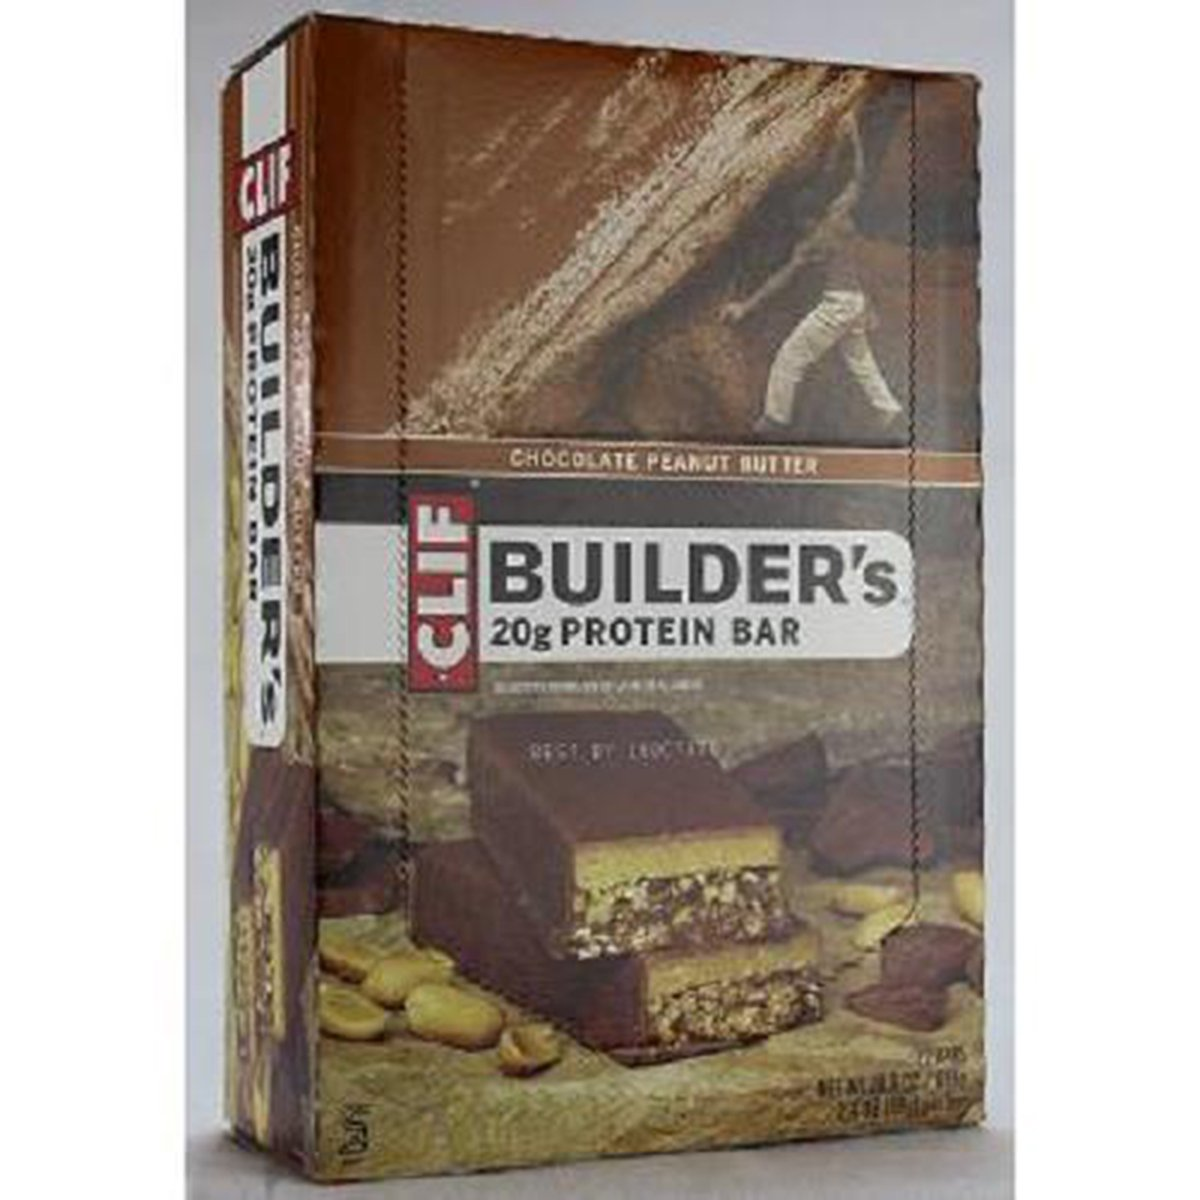 Clif Builders Chocolate Peanut Butter Bar Protein 2. 12 Outlet ☆ Free 70% OFF Outlet Shipping Count